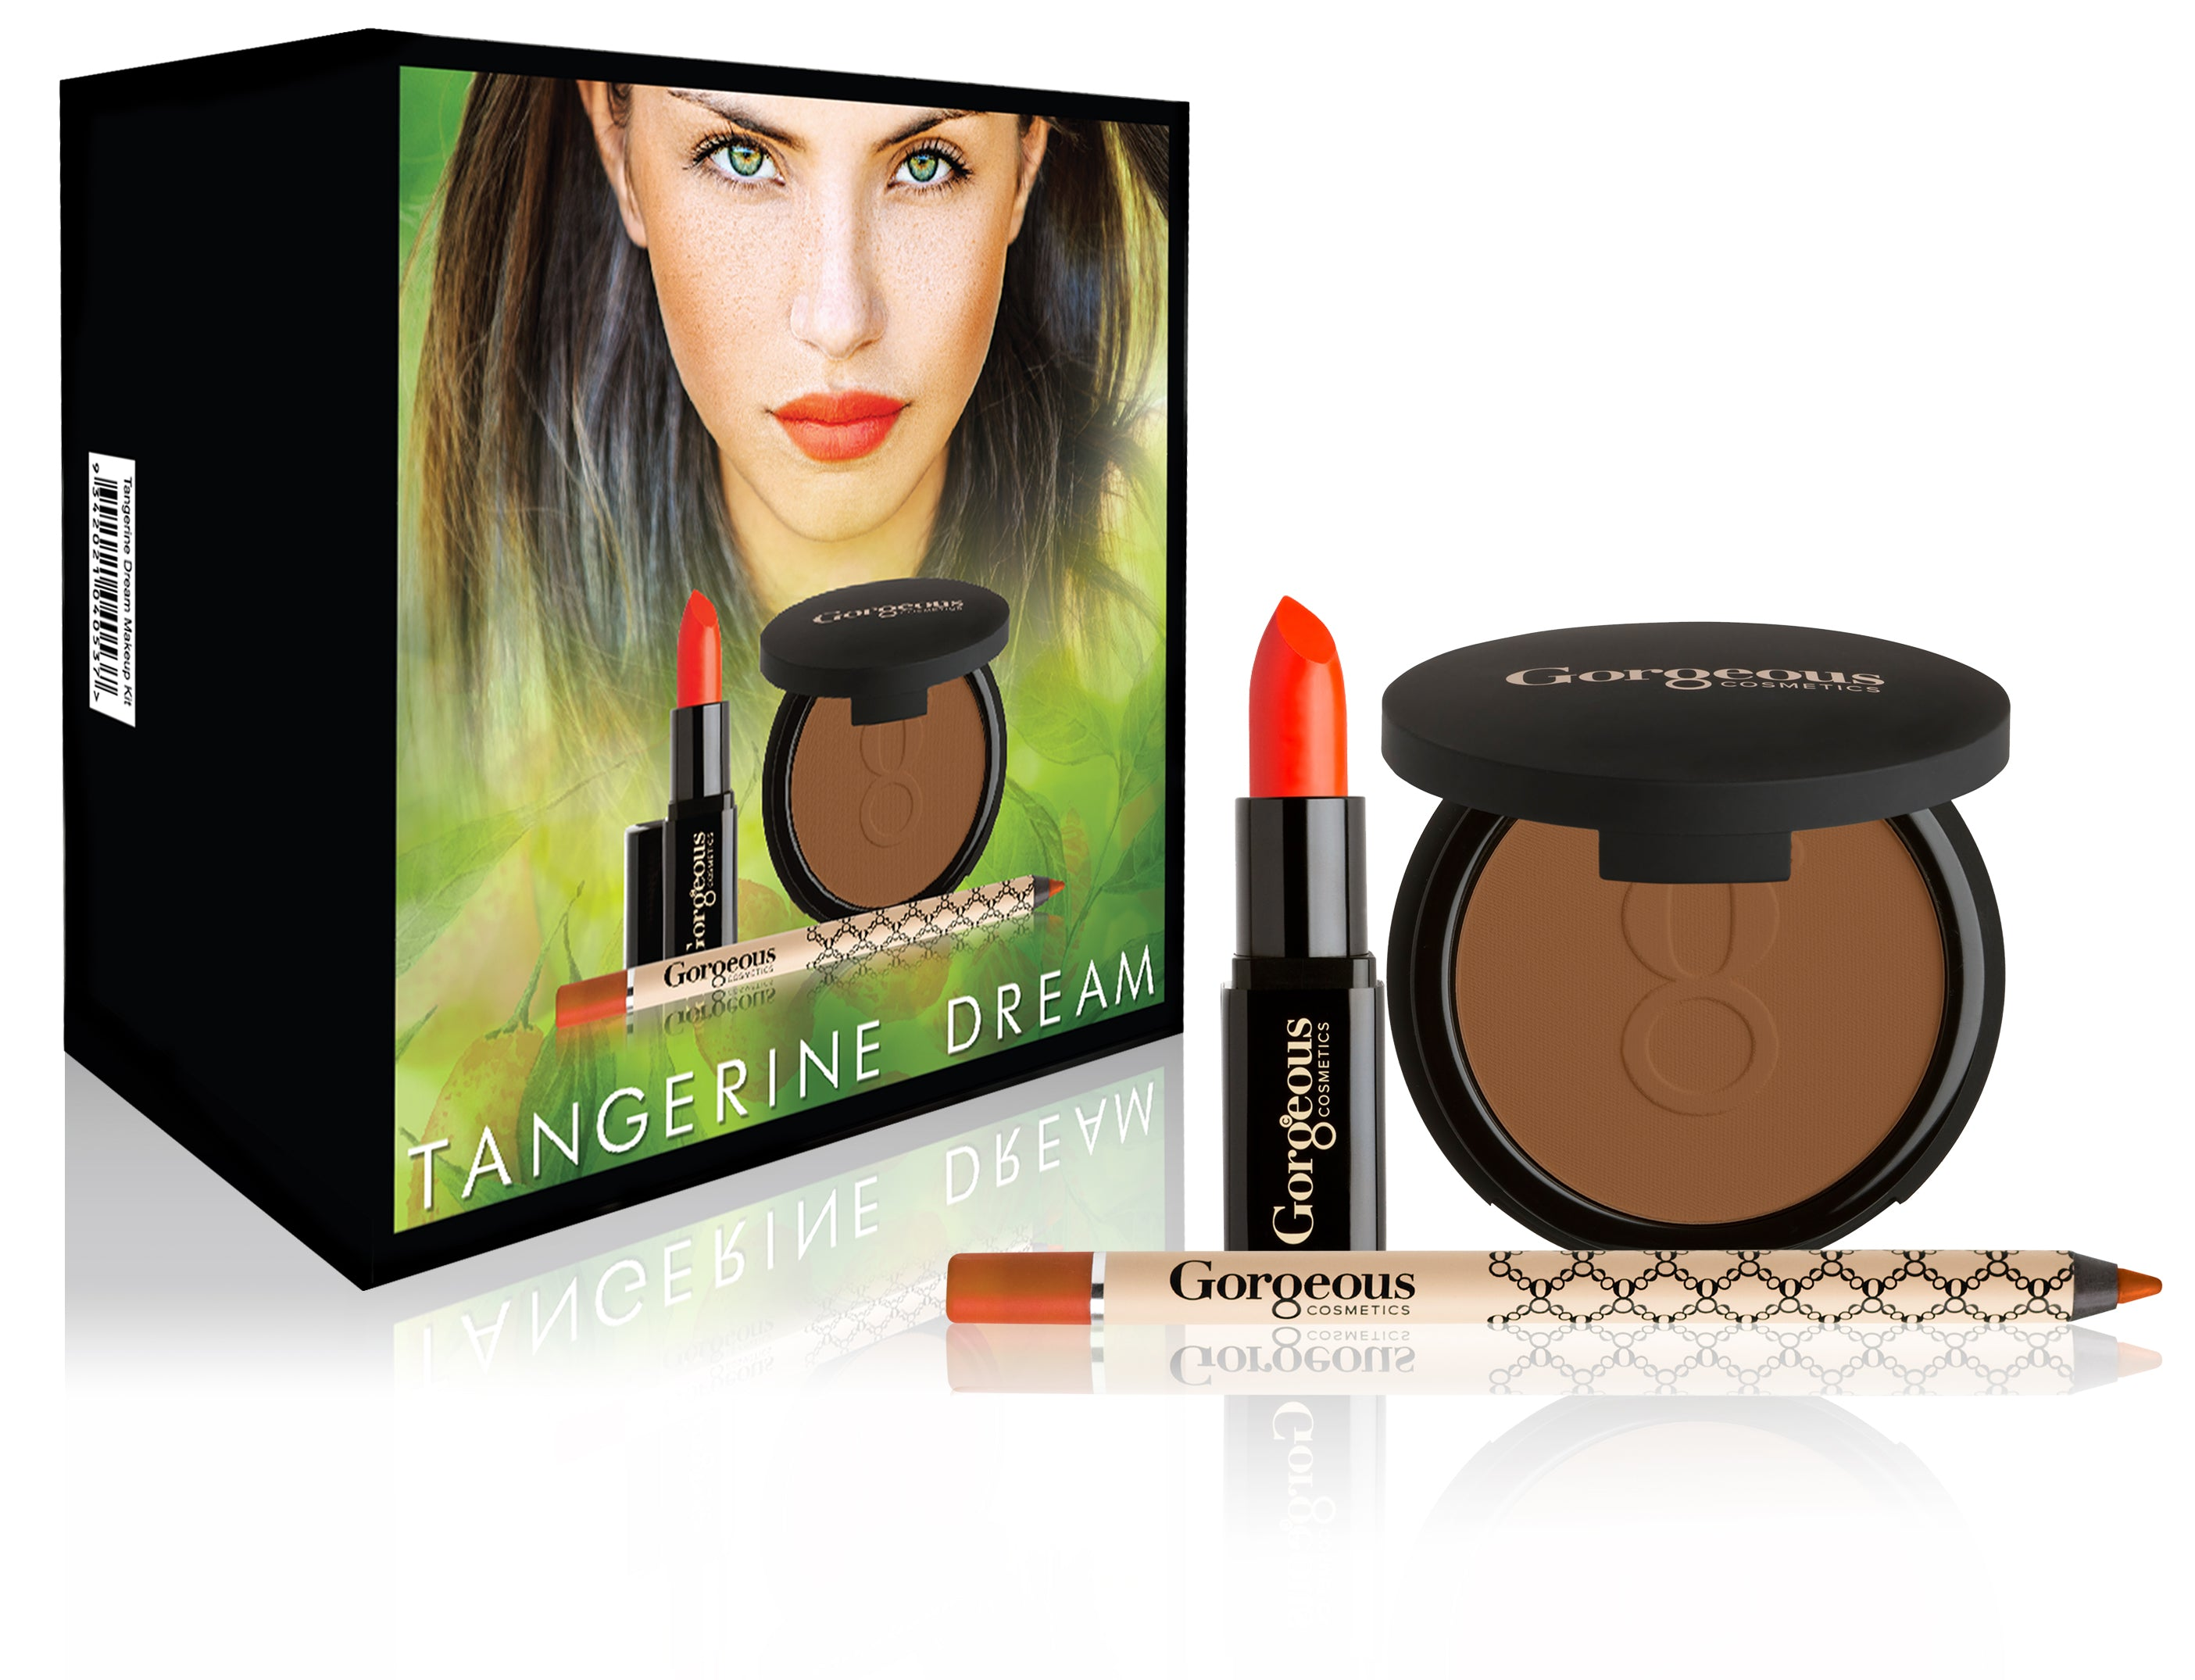 TANGERINE DREAM MAKEUP KIT